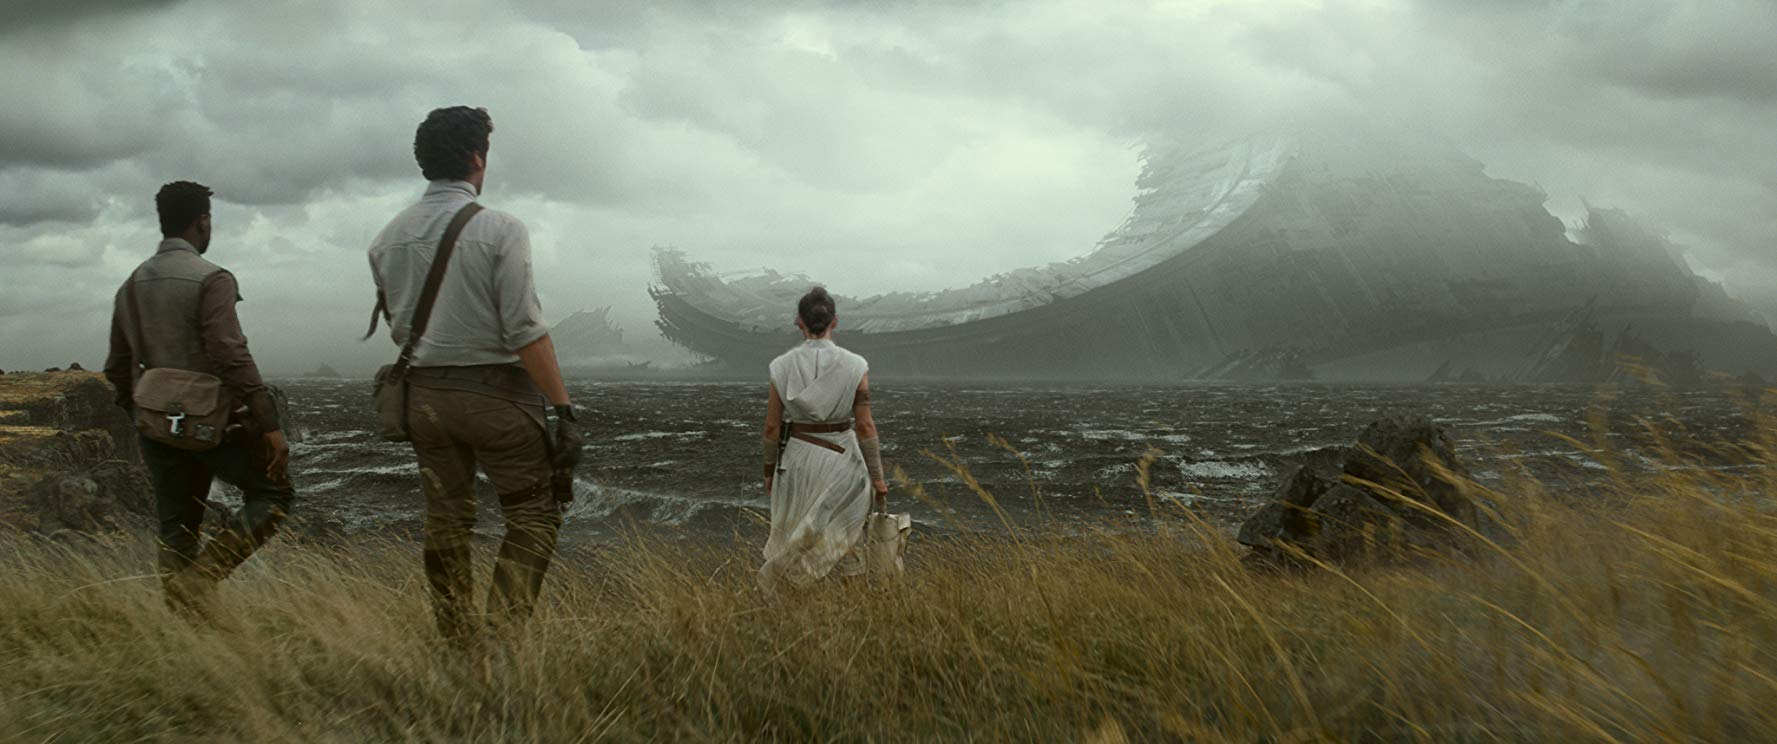 Star Wars- The Rise of Skywalker panoramic